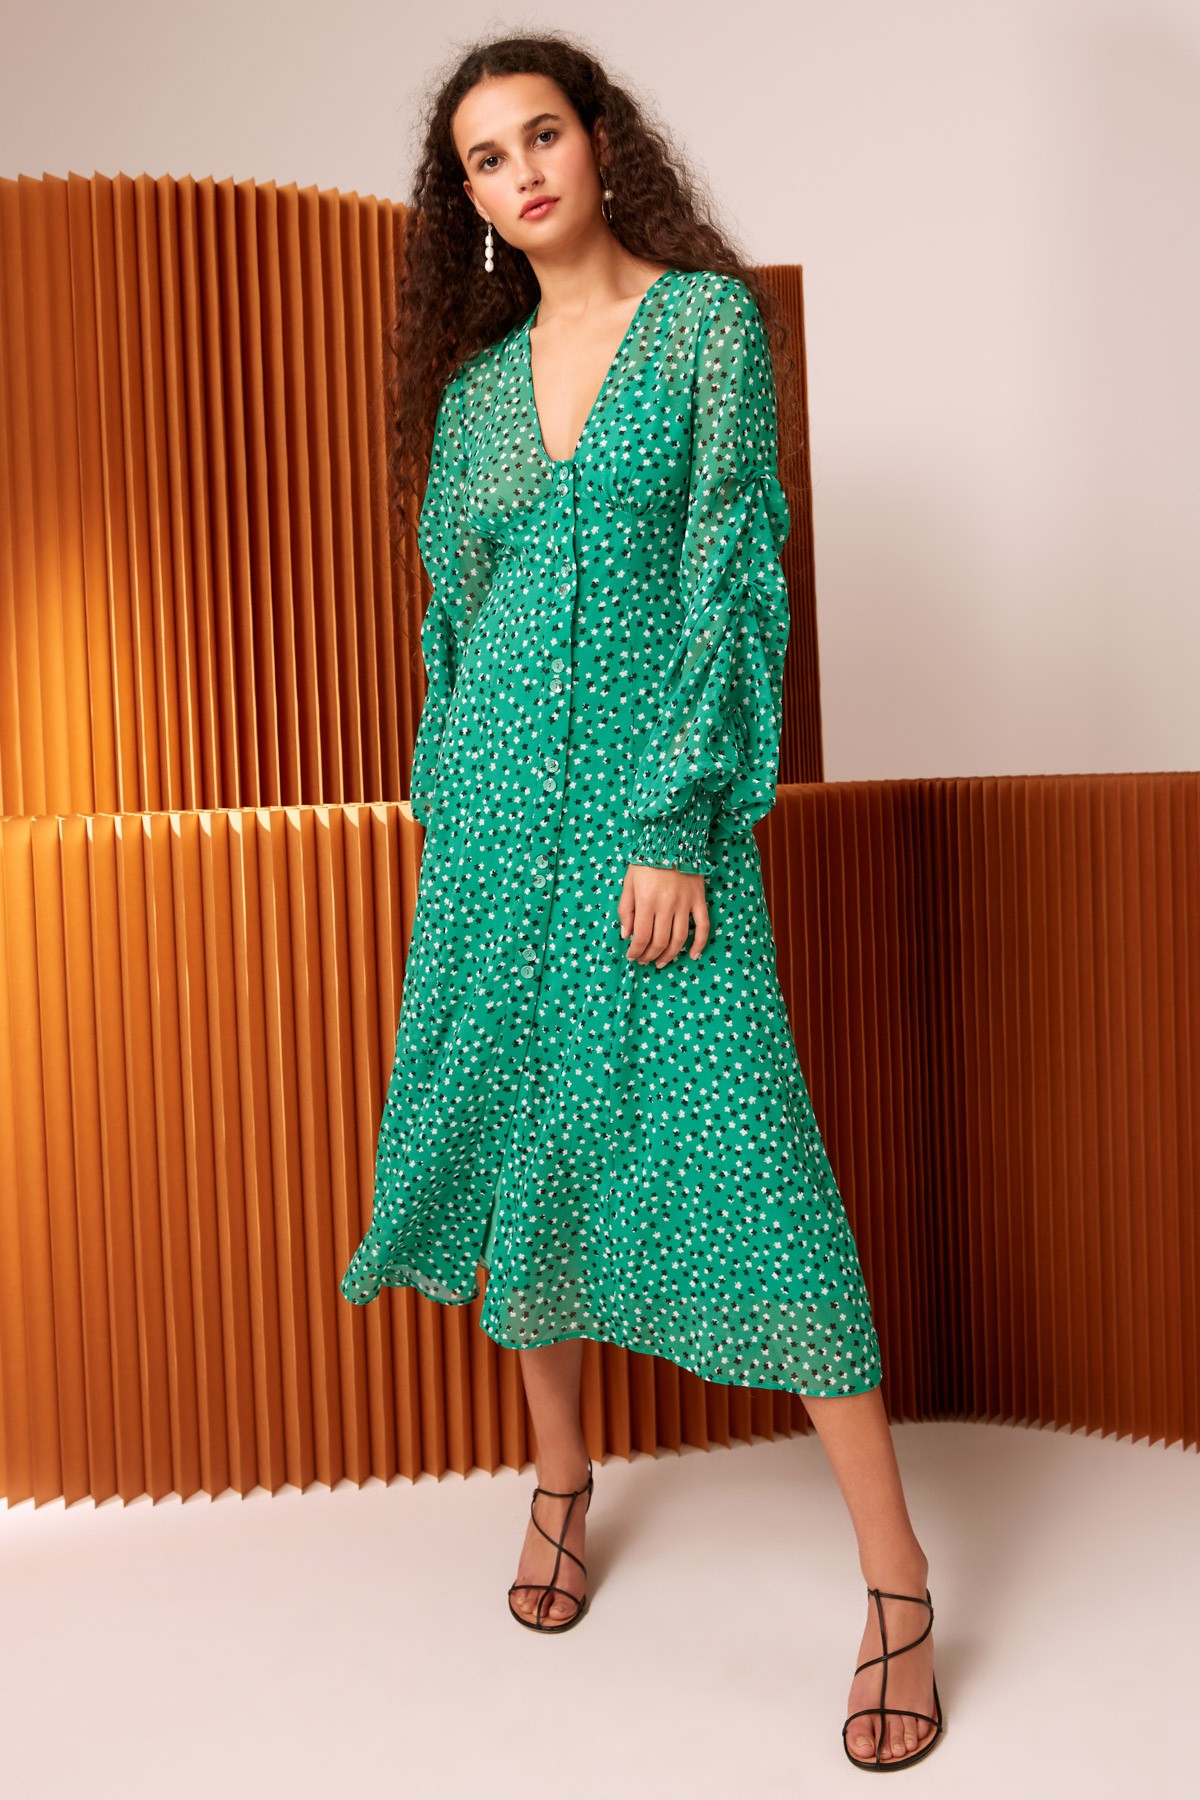 Shop C/MEO Loyalties Midi Dress.